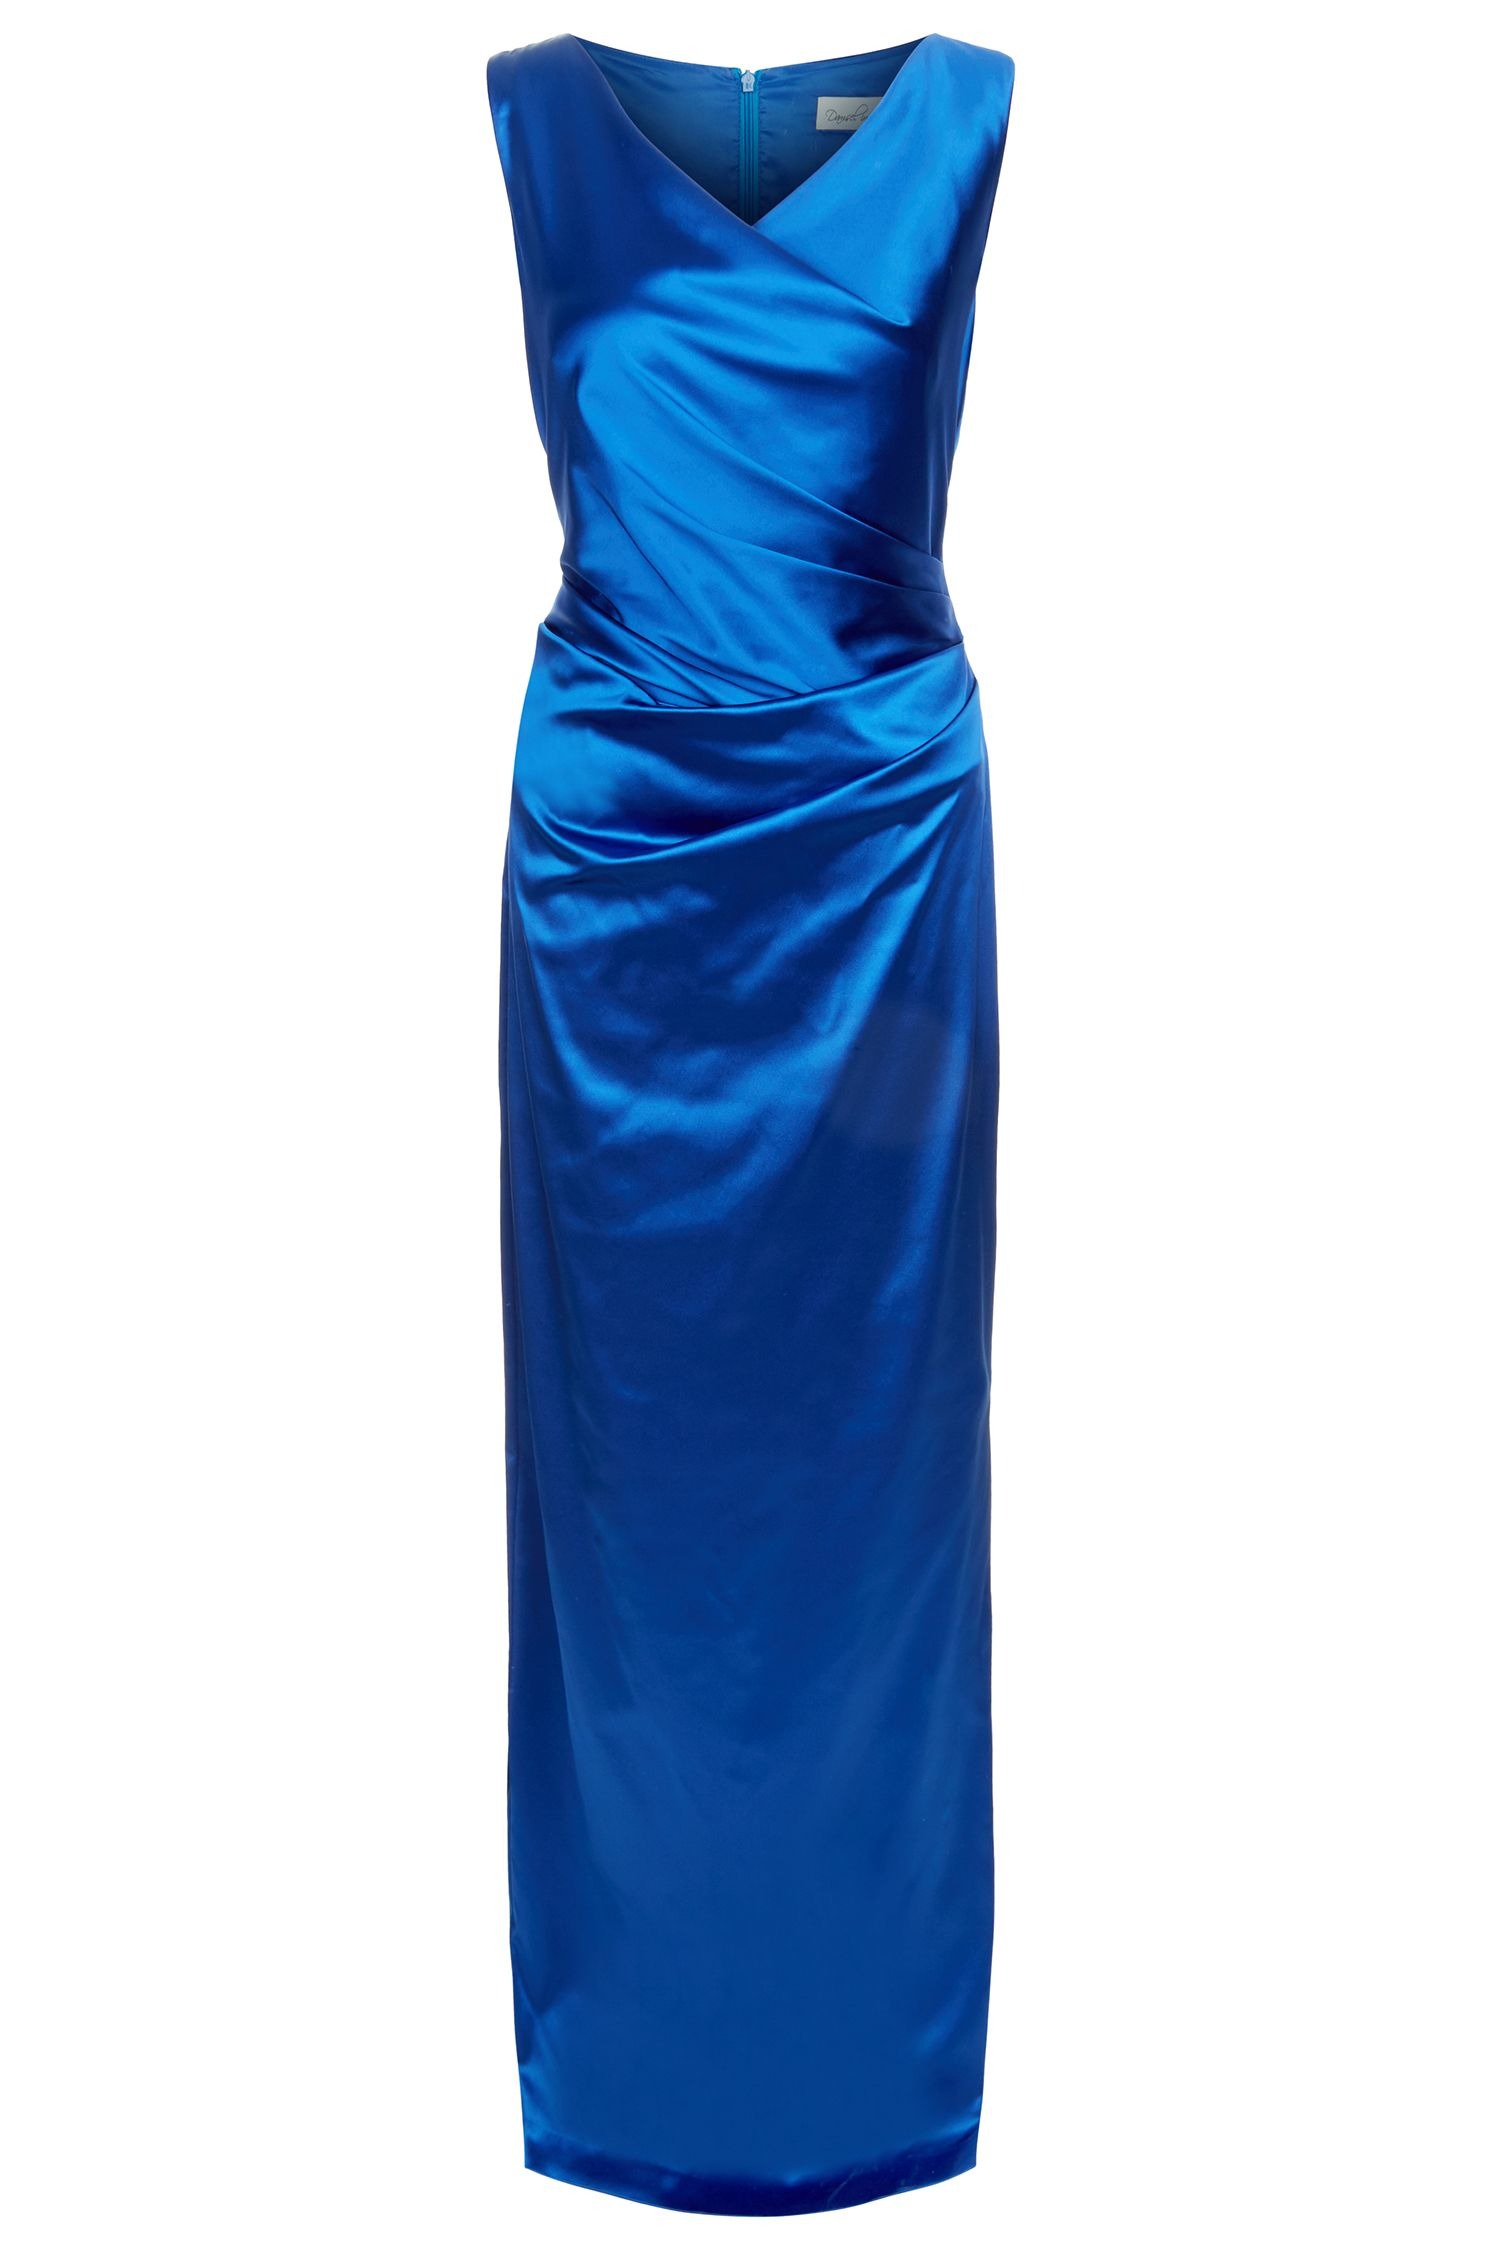 Damsel in a Dress Bellini Dress, Blue